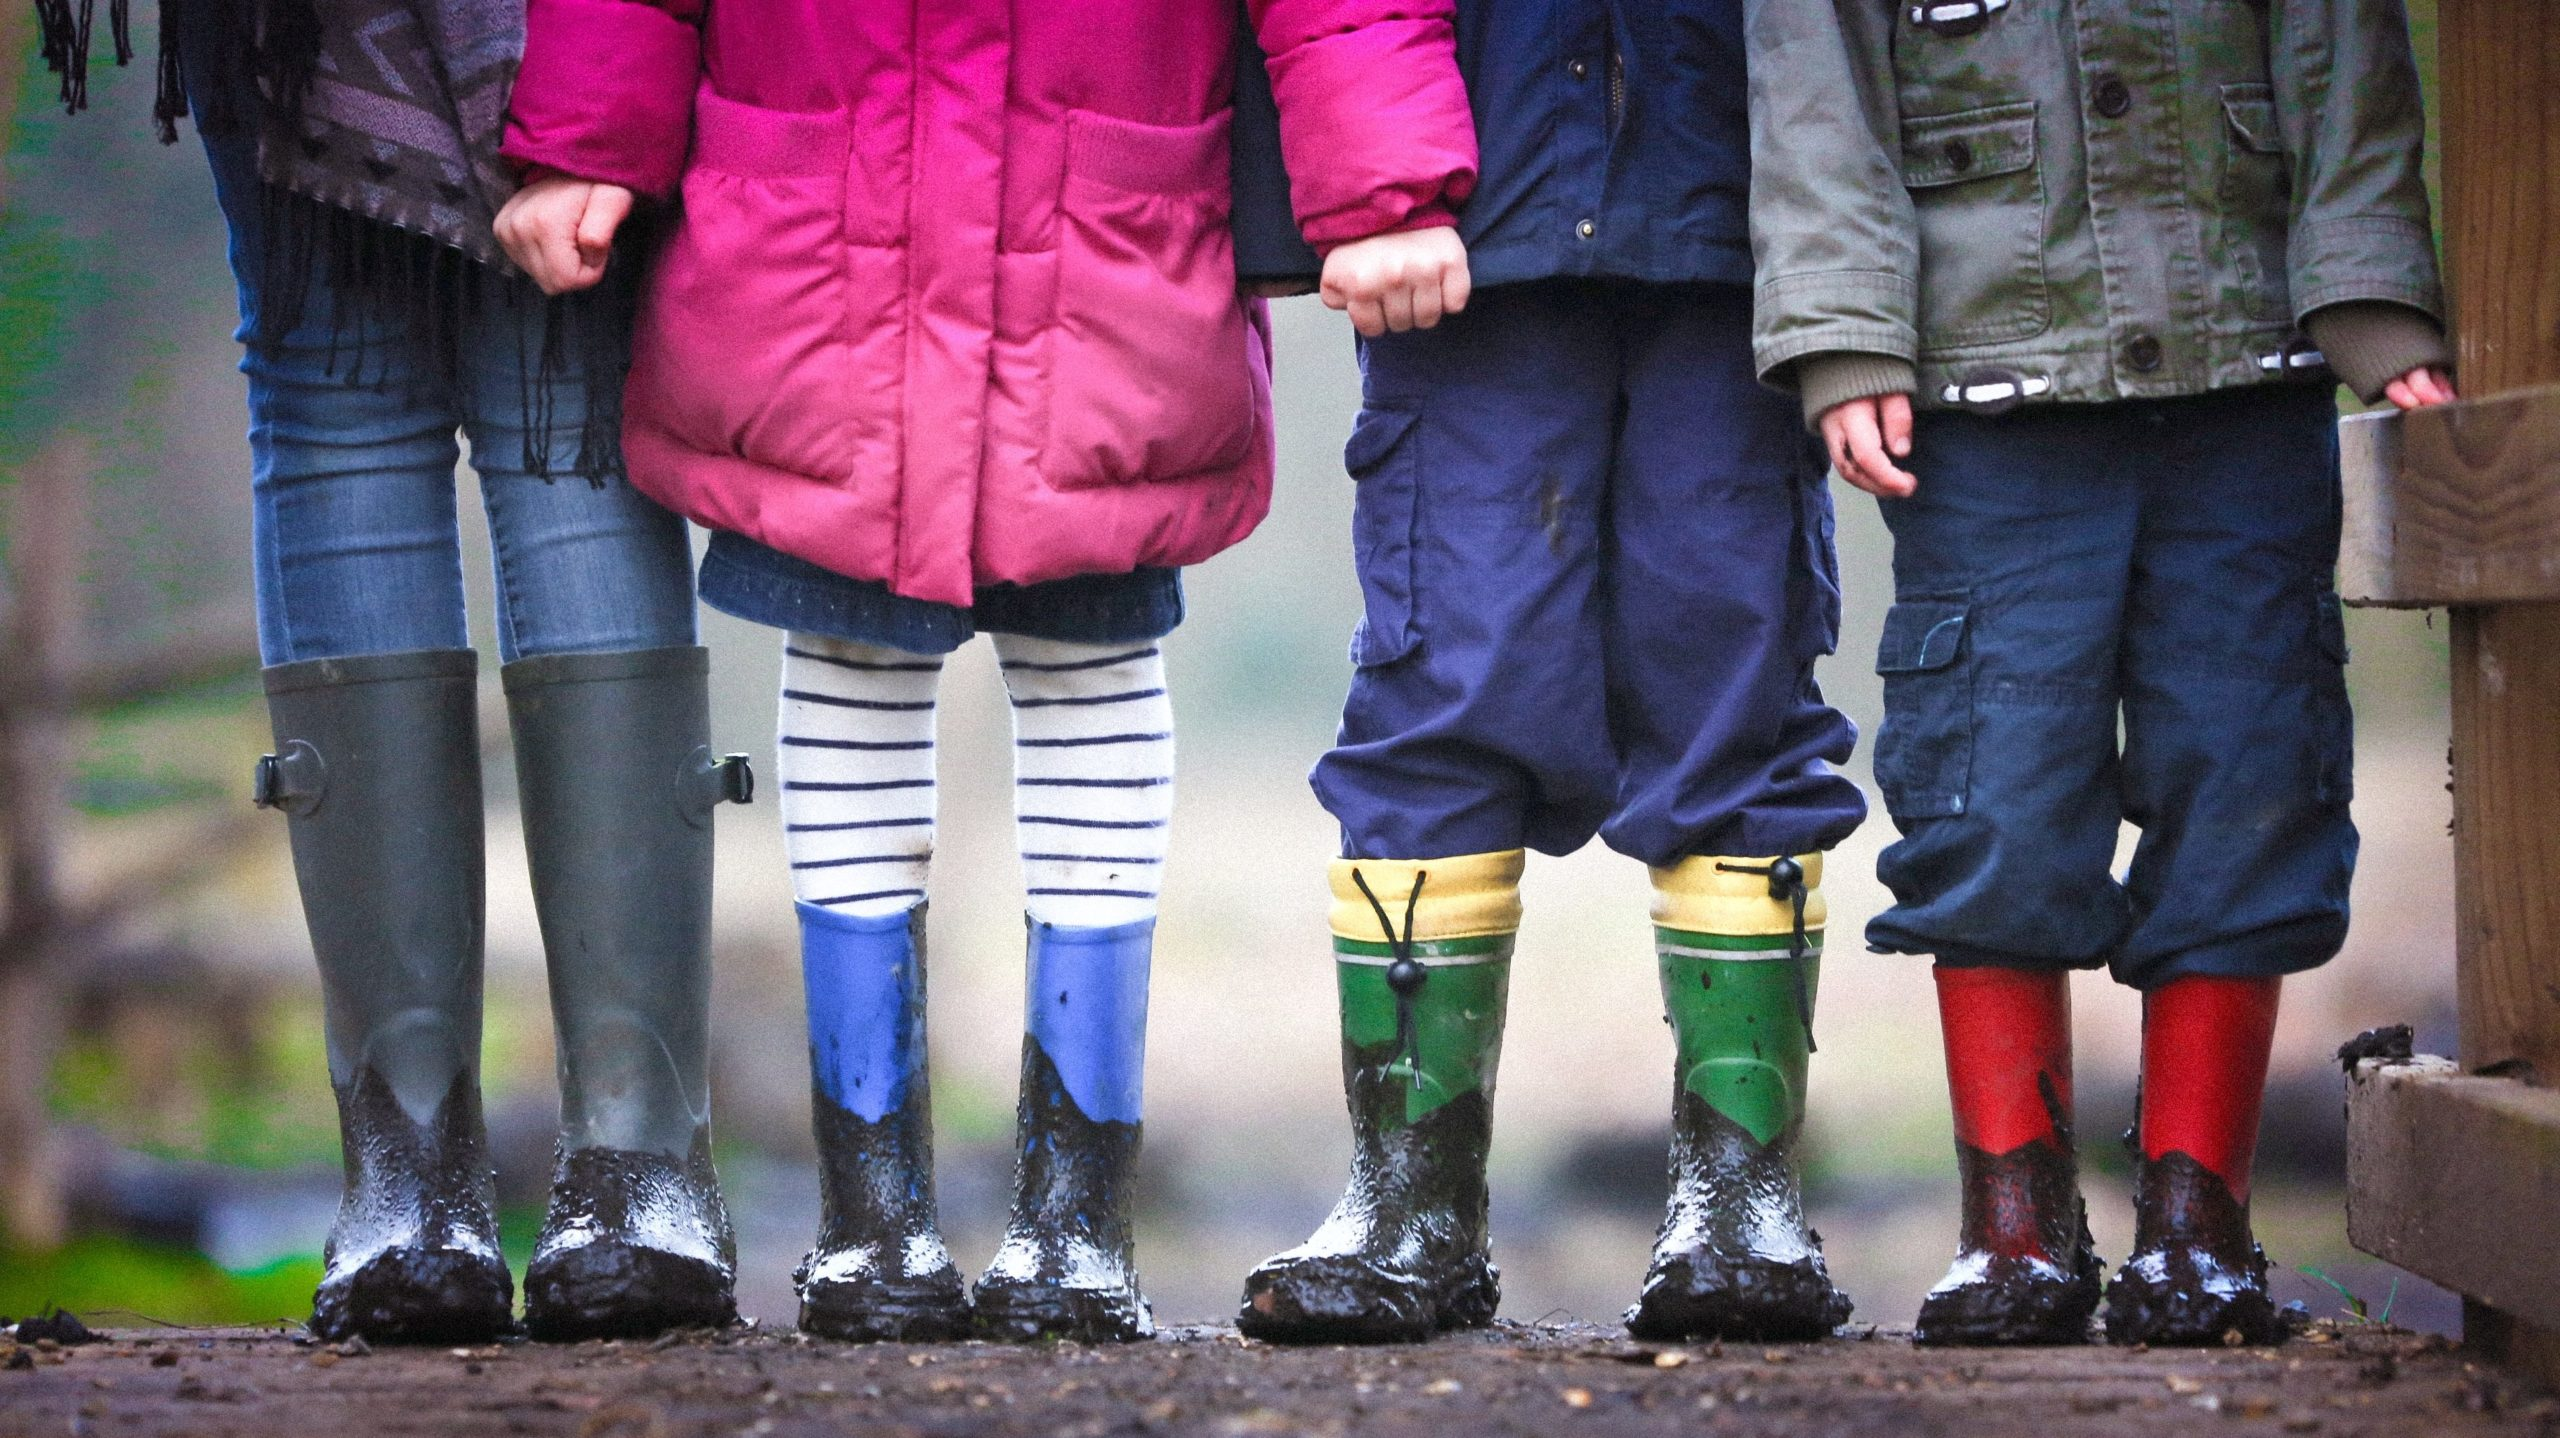 Children stand in a line in wellington boots